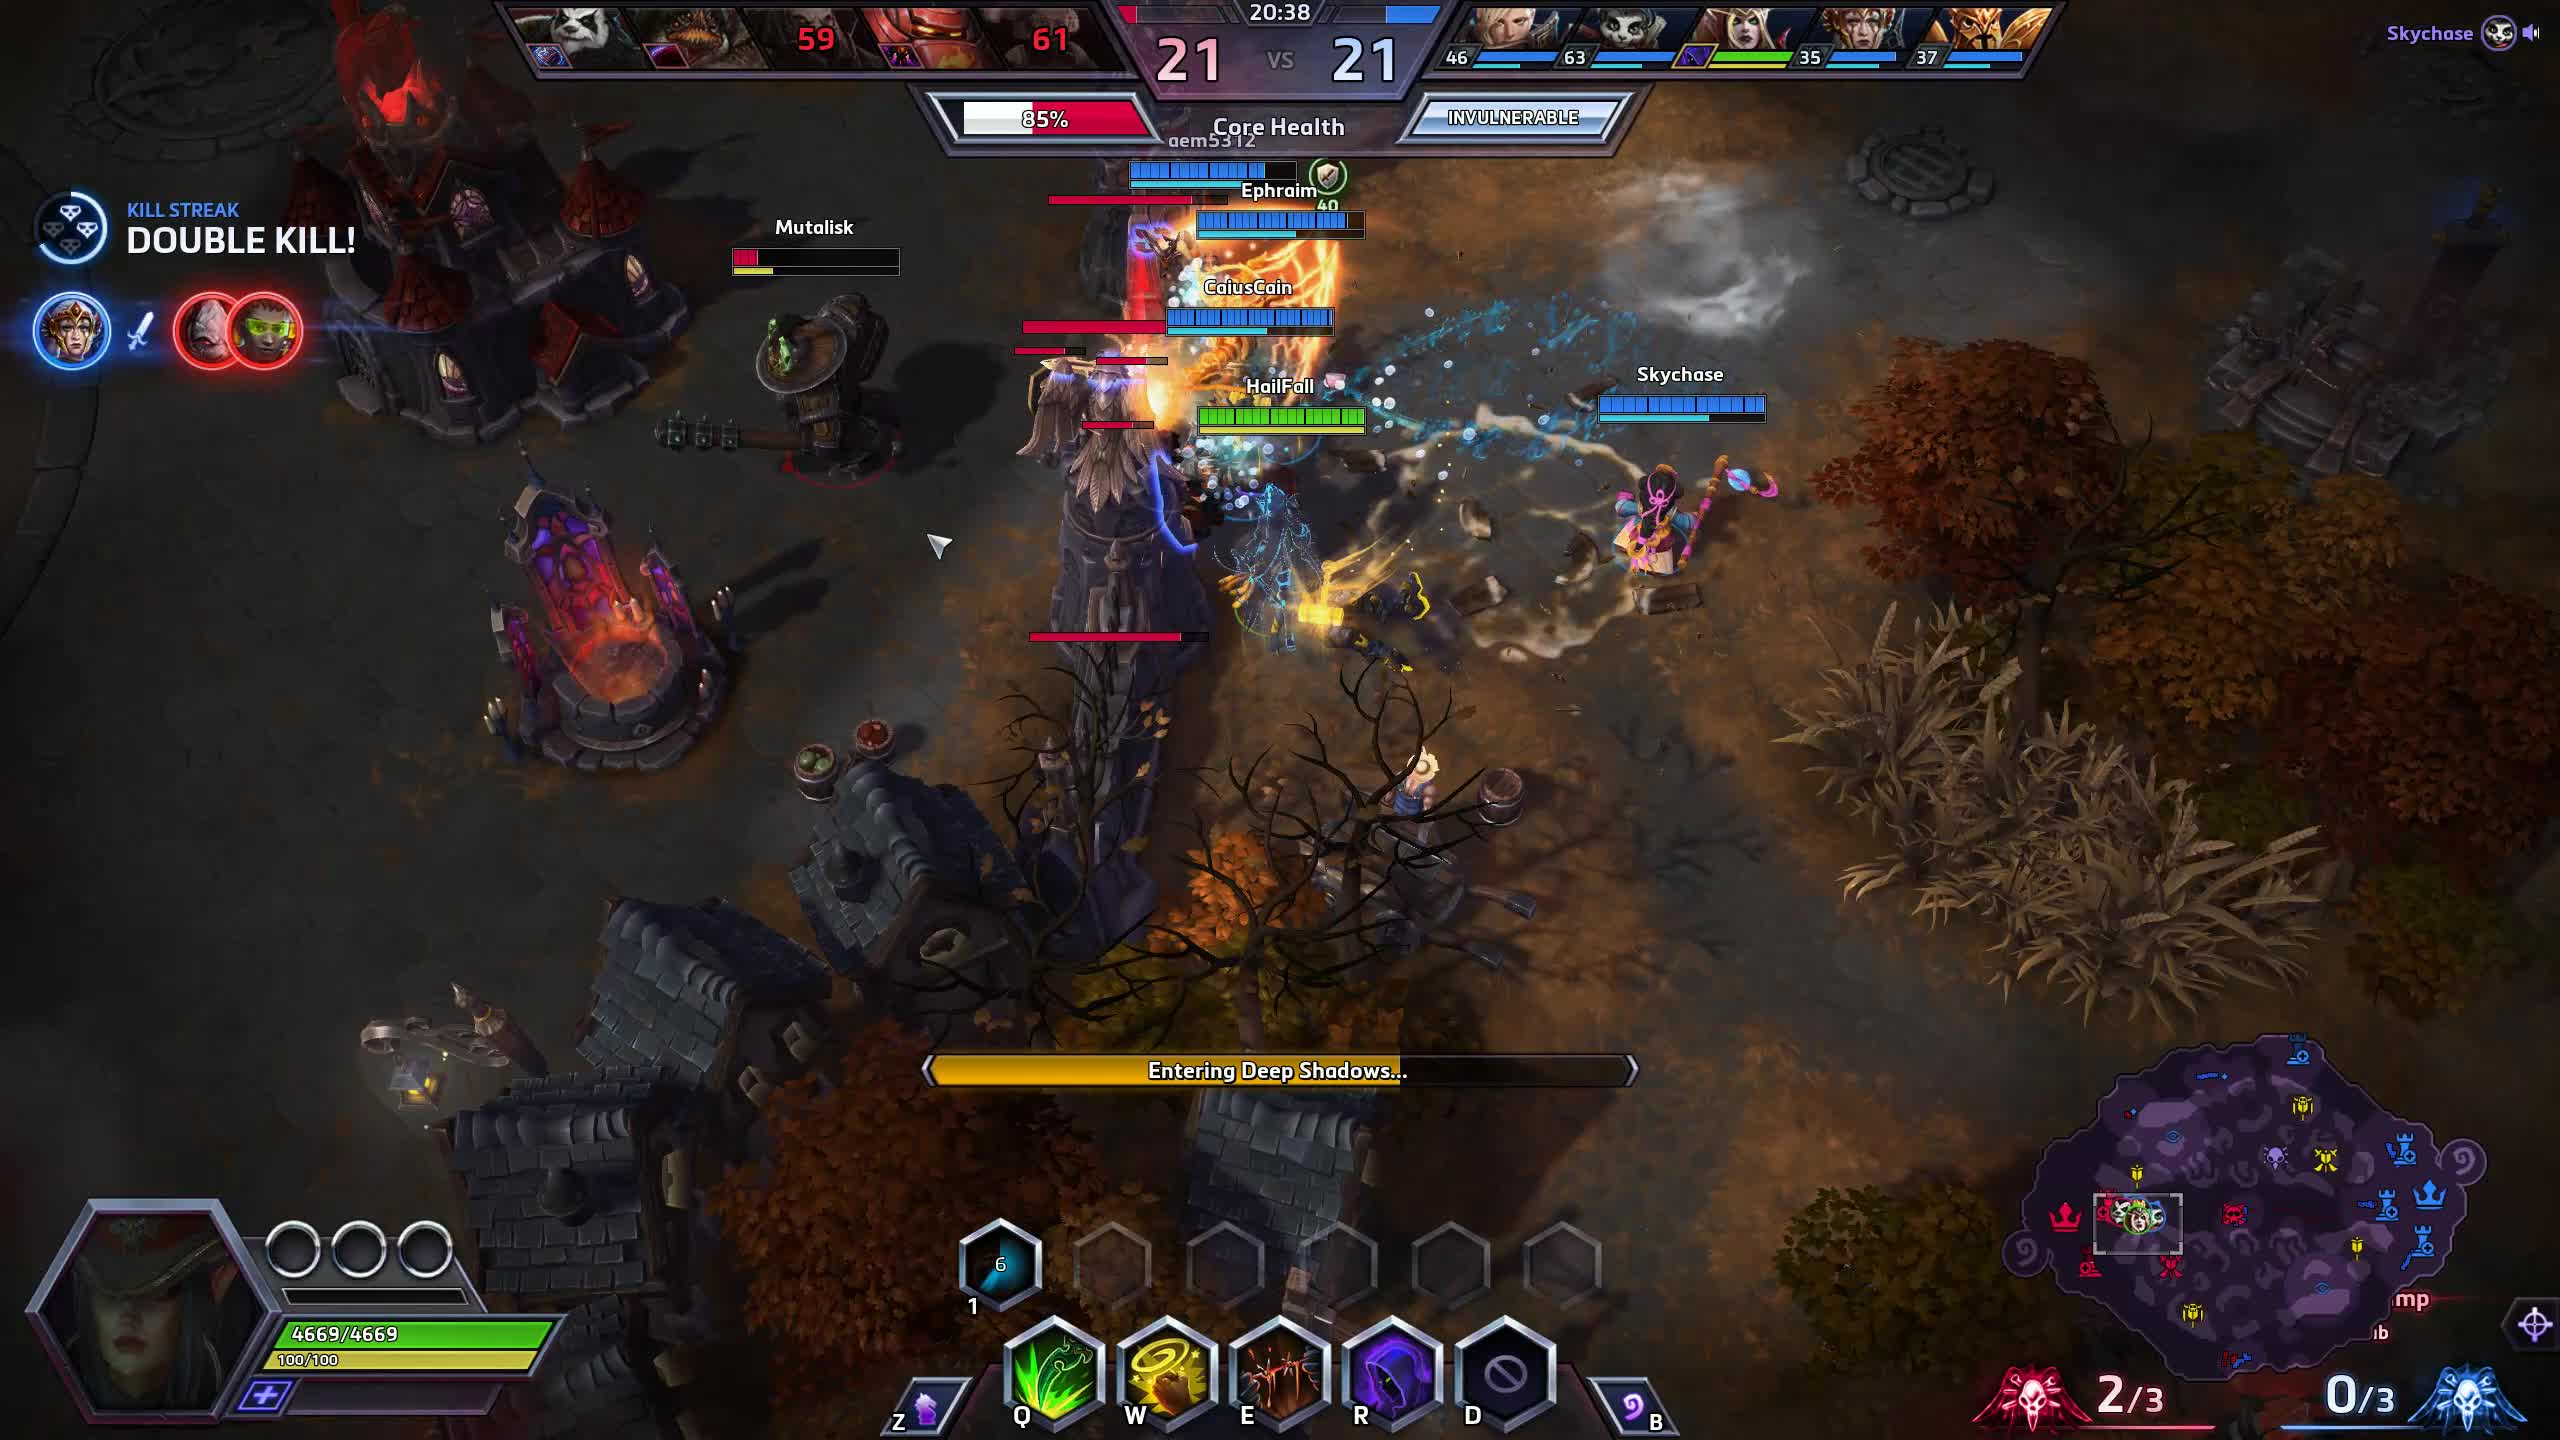 heroesofthestorm, Heroes of the Storm 2019.04.08 - 21.09.06.02.DVR GIFs